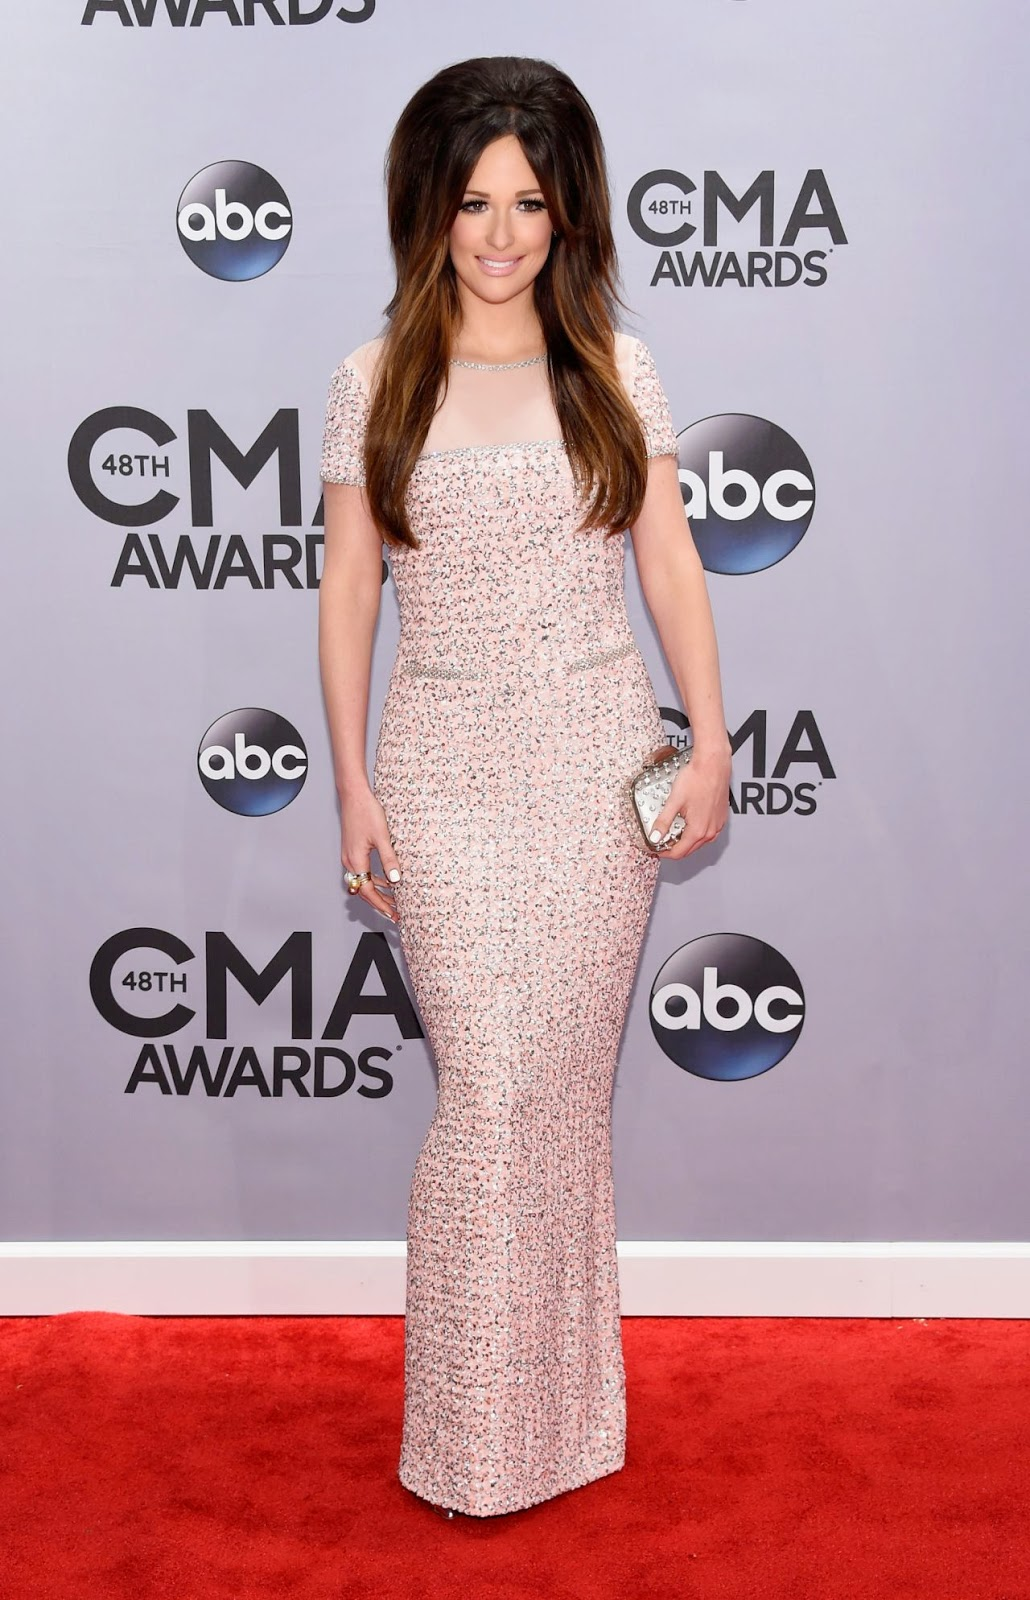 Kacey Musgraves - Best Dressed Celebrities at the 2014 Annual CMA Awards in Nashville